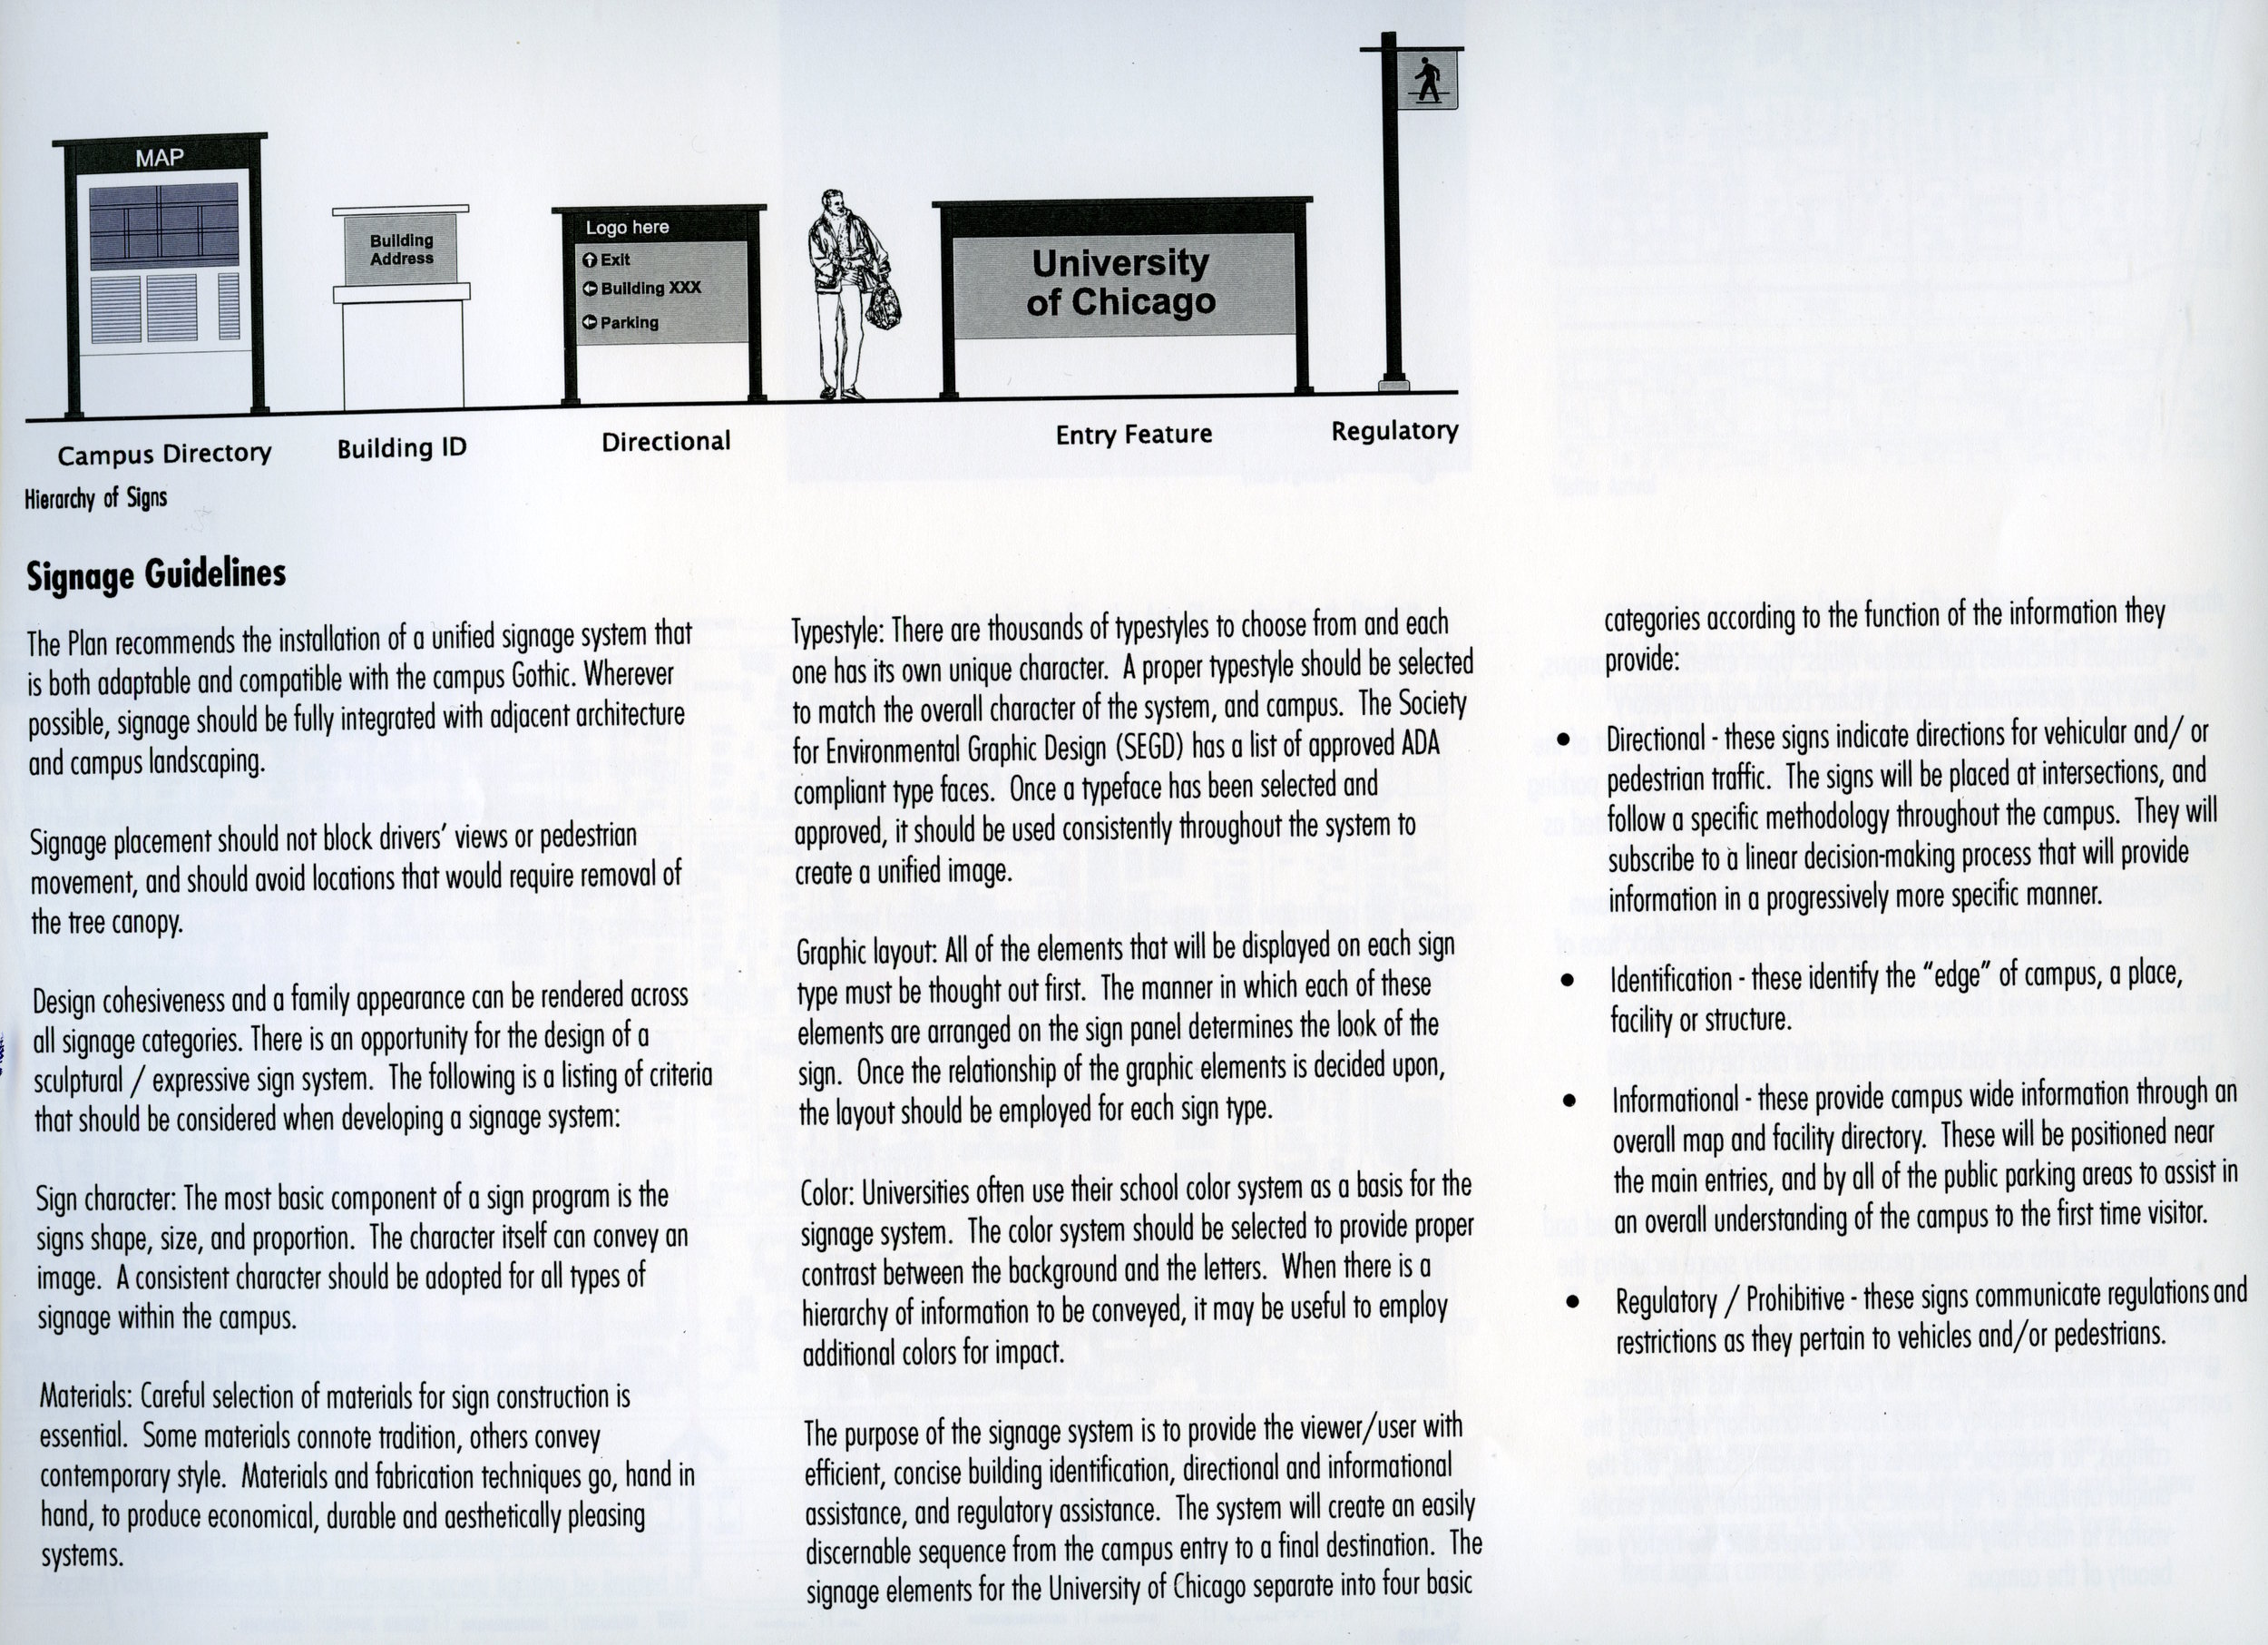 Campus Signage Guidelines, from the 1999 NBBJ Master Plan